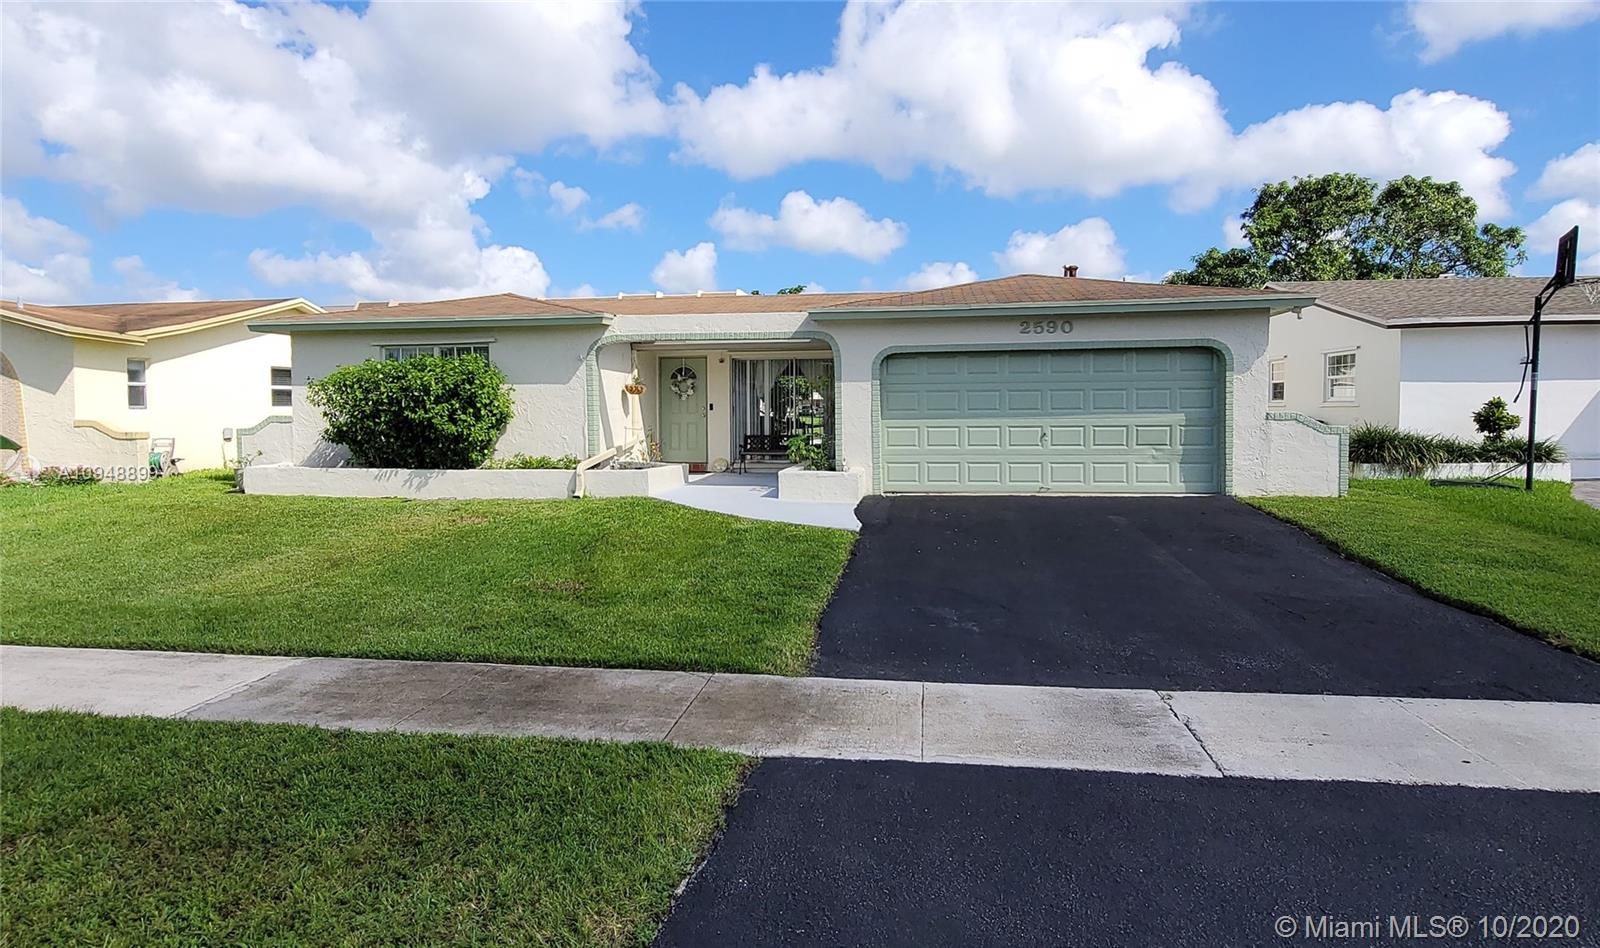 Sunrise Golf Village - 2590 NW 105th Ln, Sunrise, FL 33322